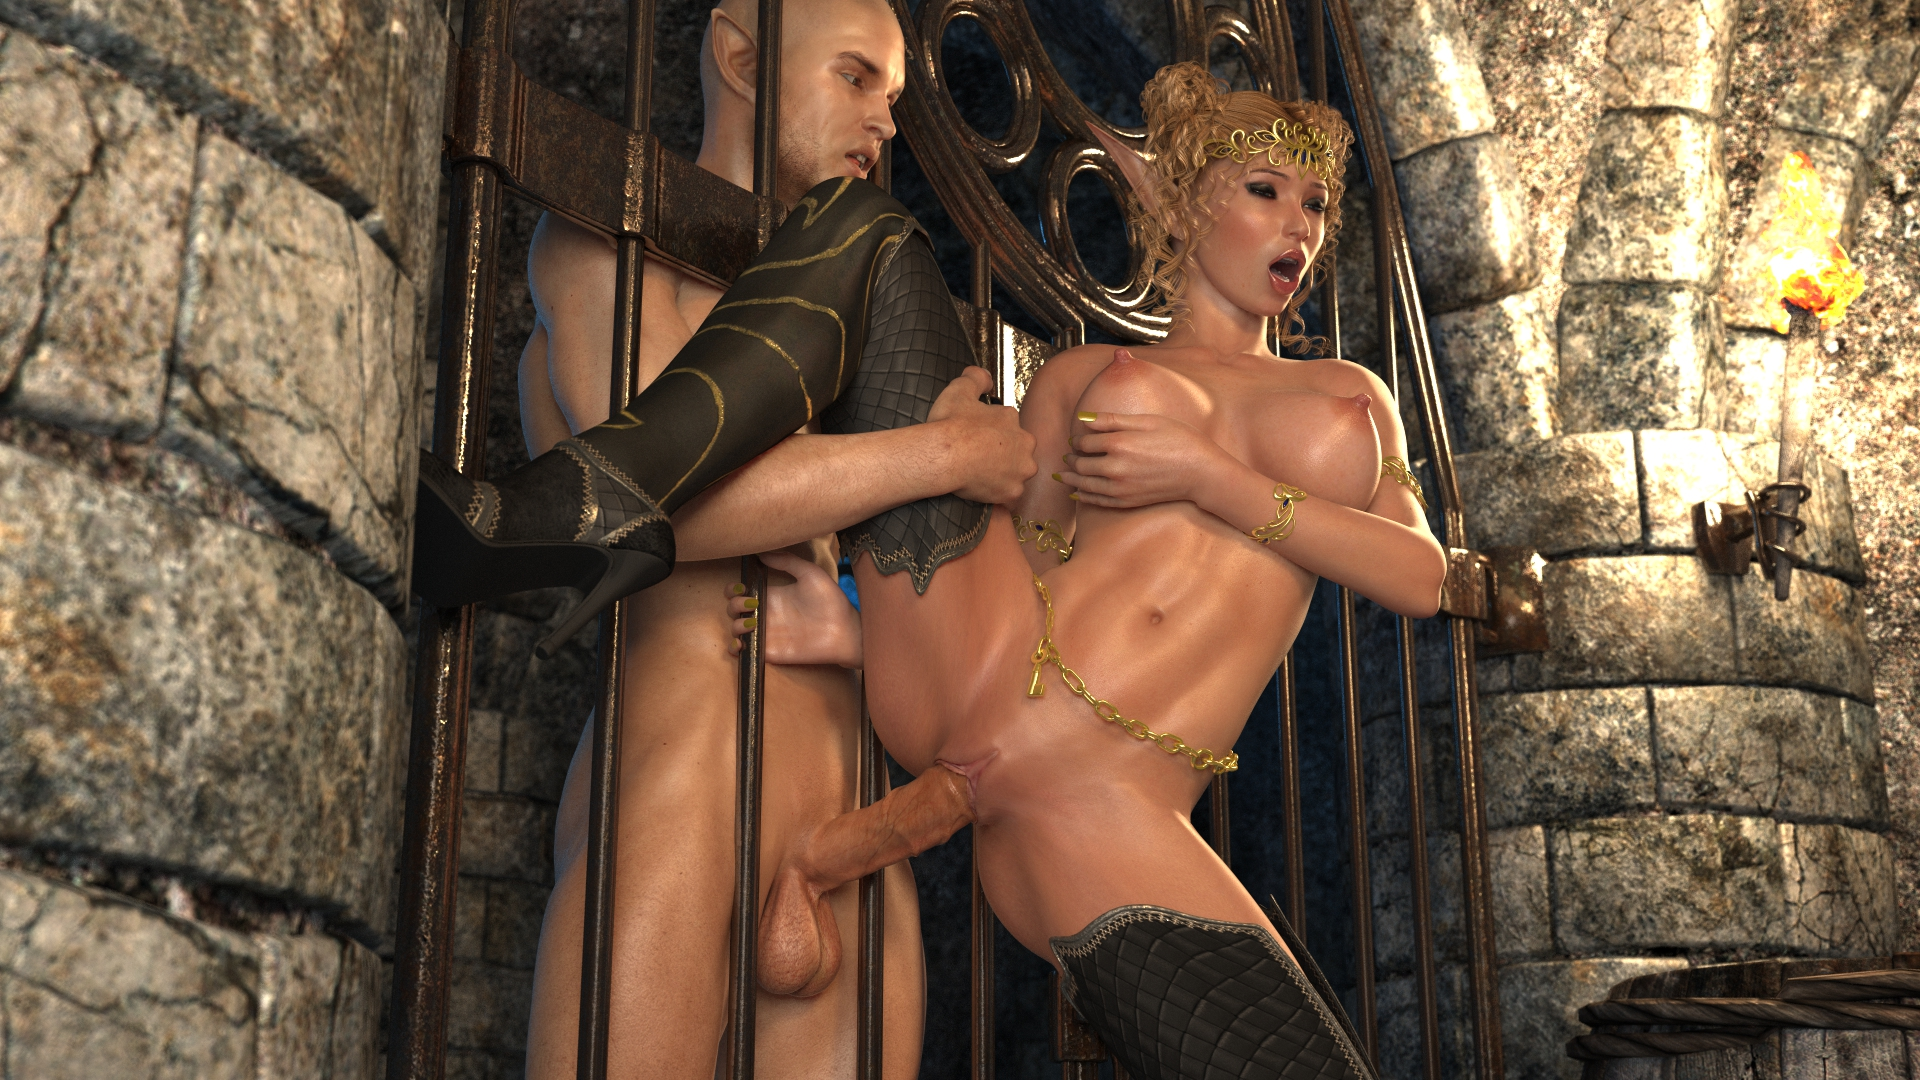 Elf porn hd wallpaper xxx scenes